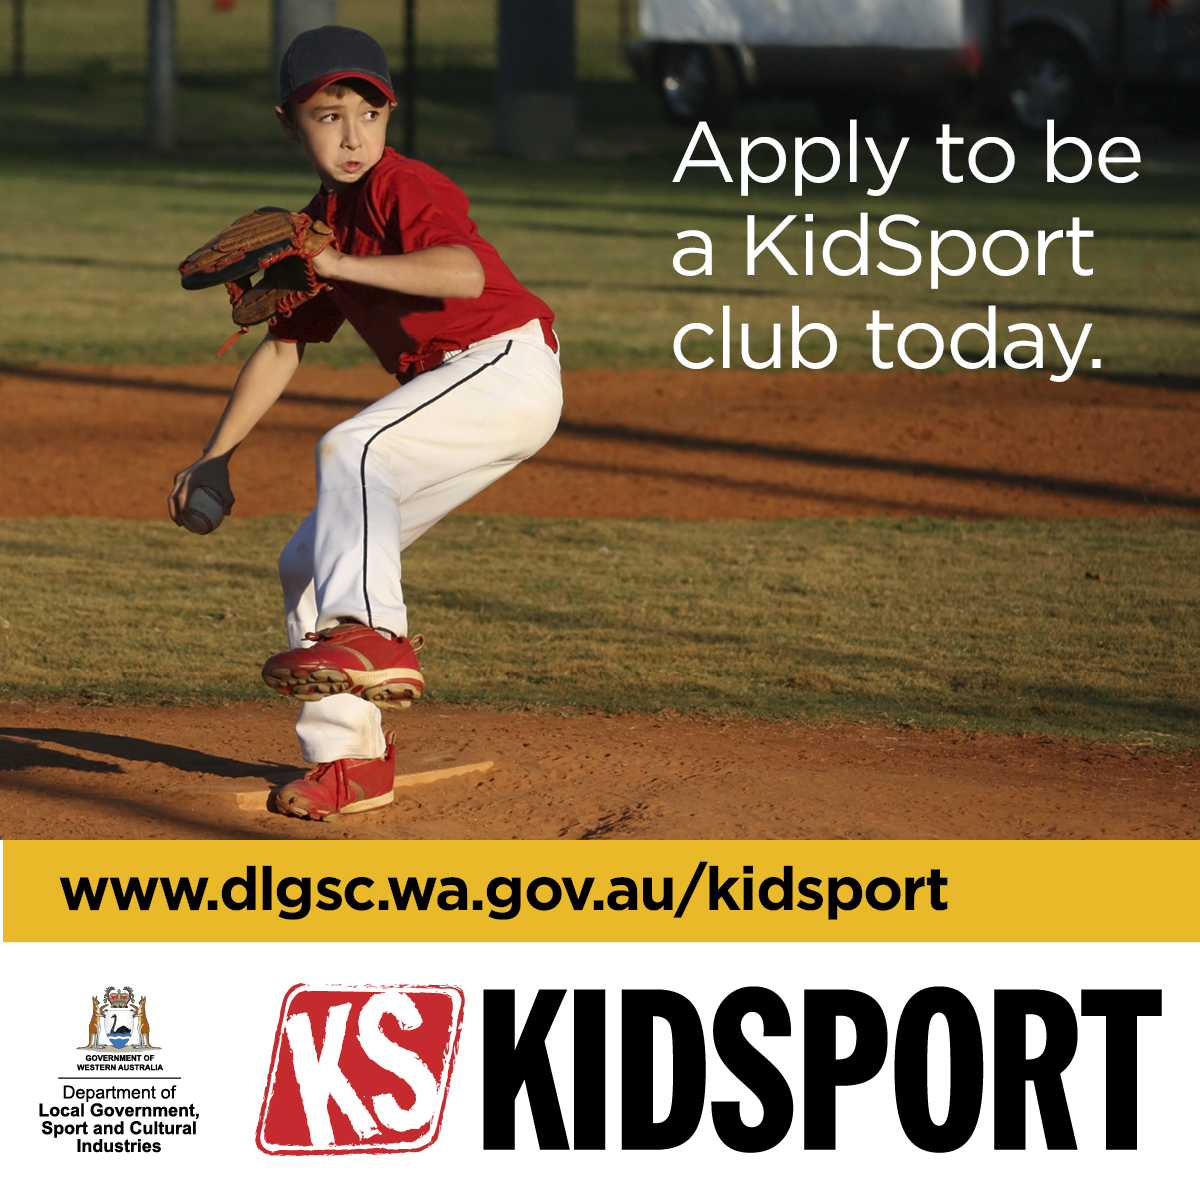 KidSport website image Apply to be a KidSport club today